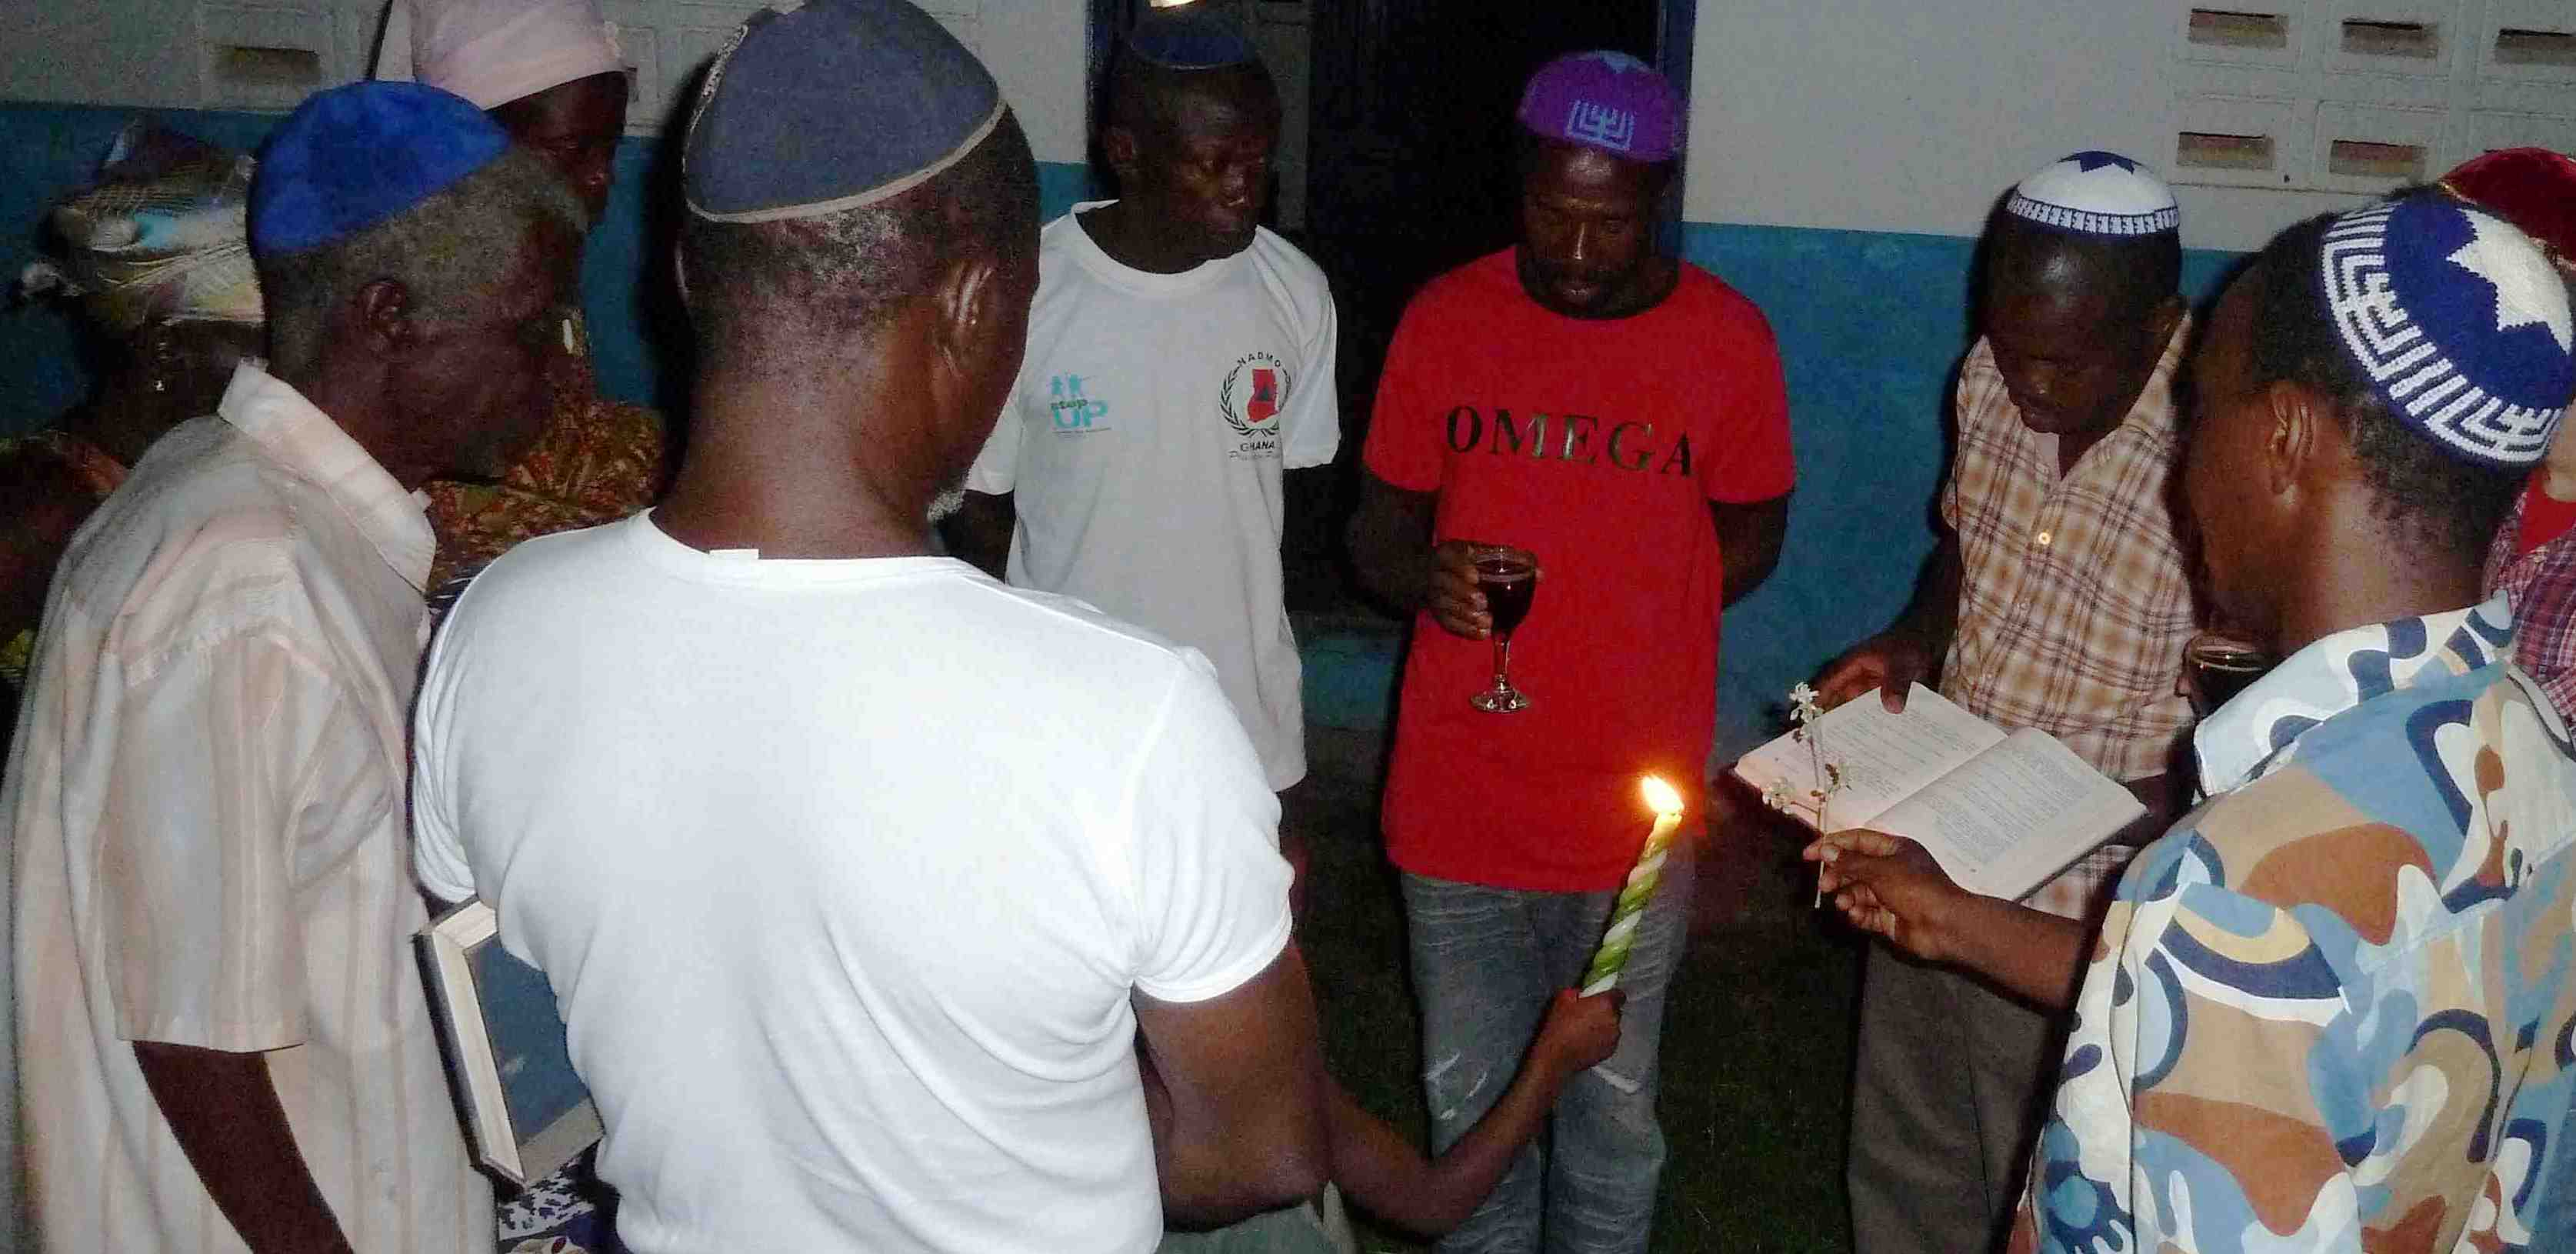 Havdallah with the Sefwi Wiawso community in Ghana. Photo courtesy Ike Swetlitz, June 2013.